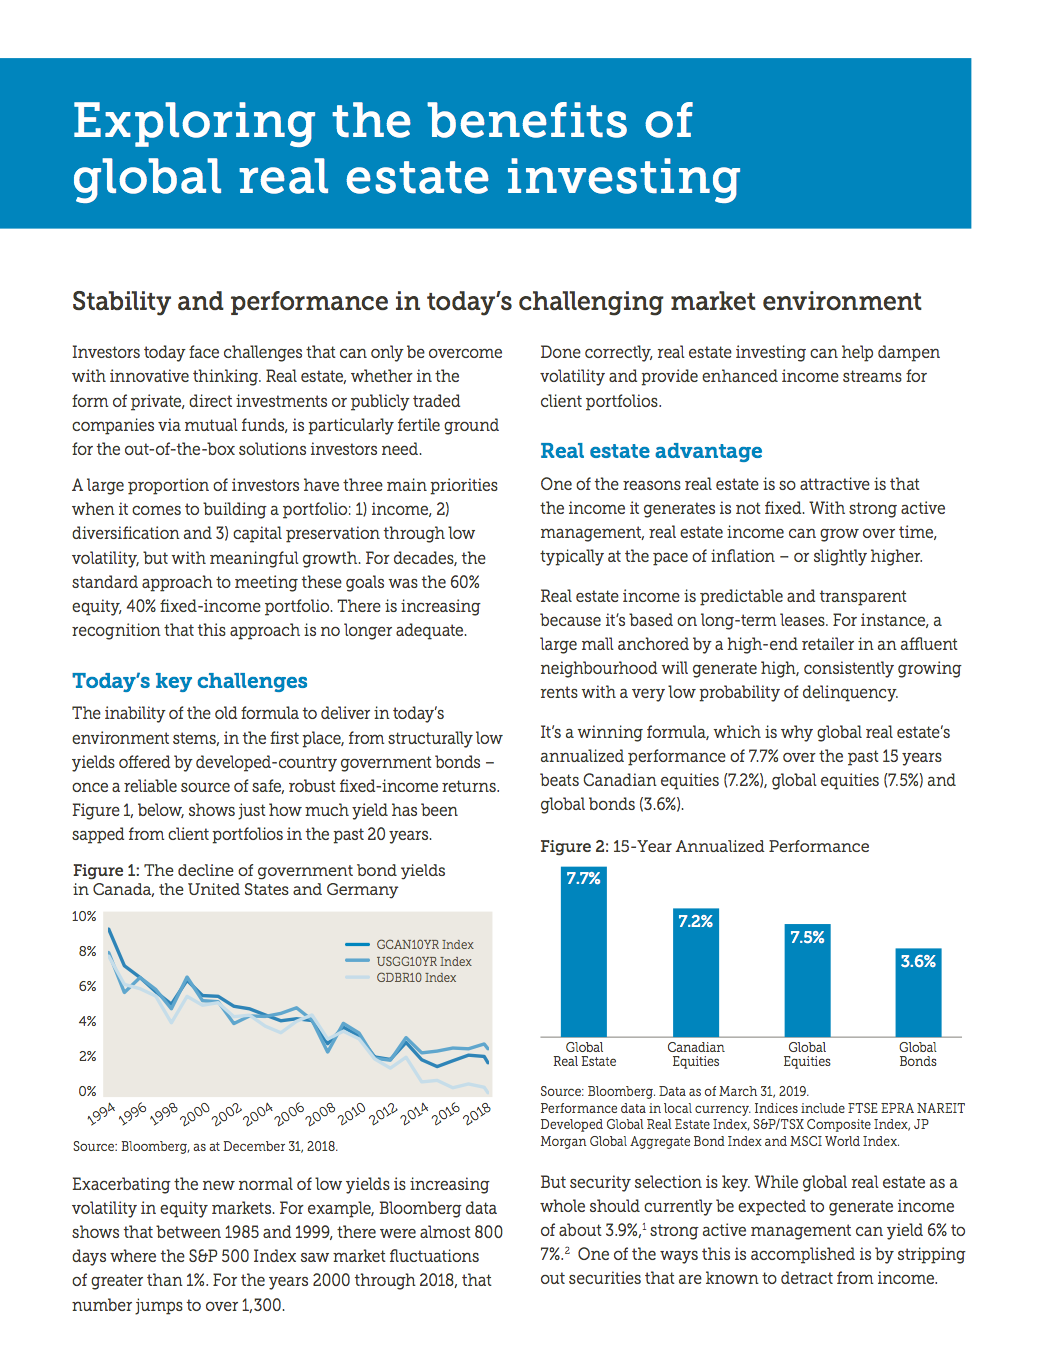 Exploring the Benefits of Global Real Estate Investing